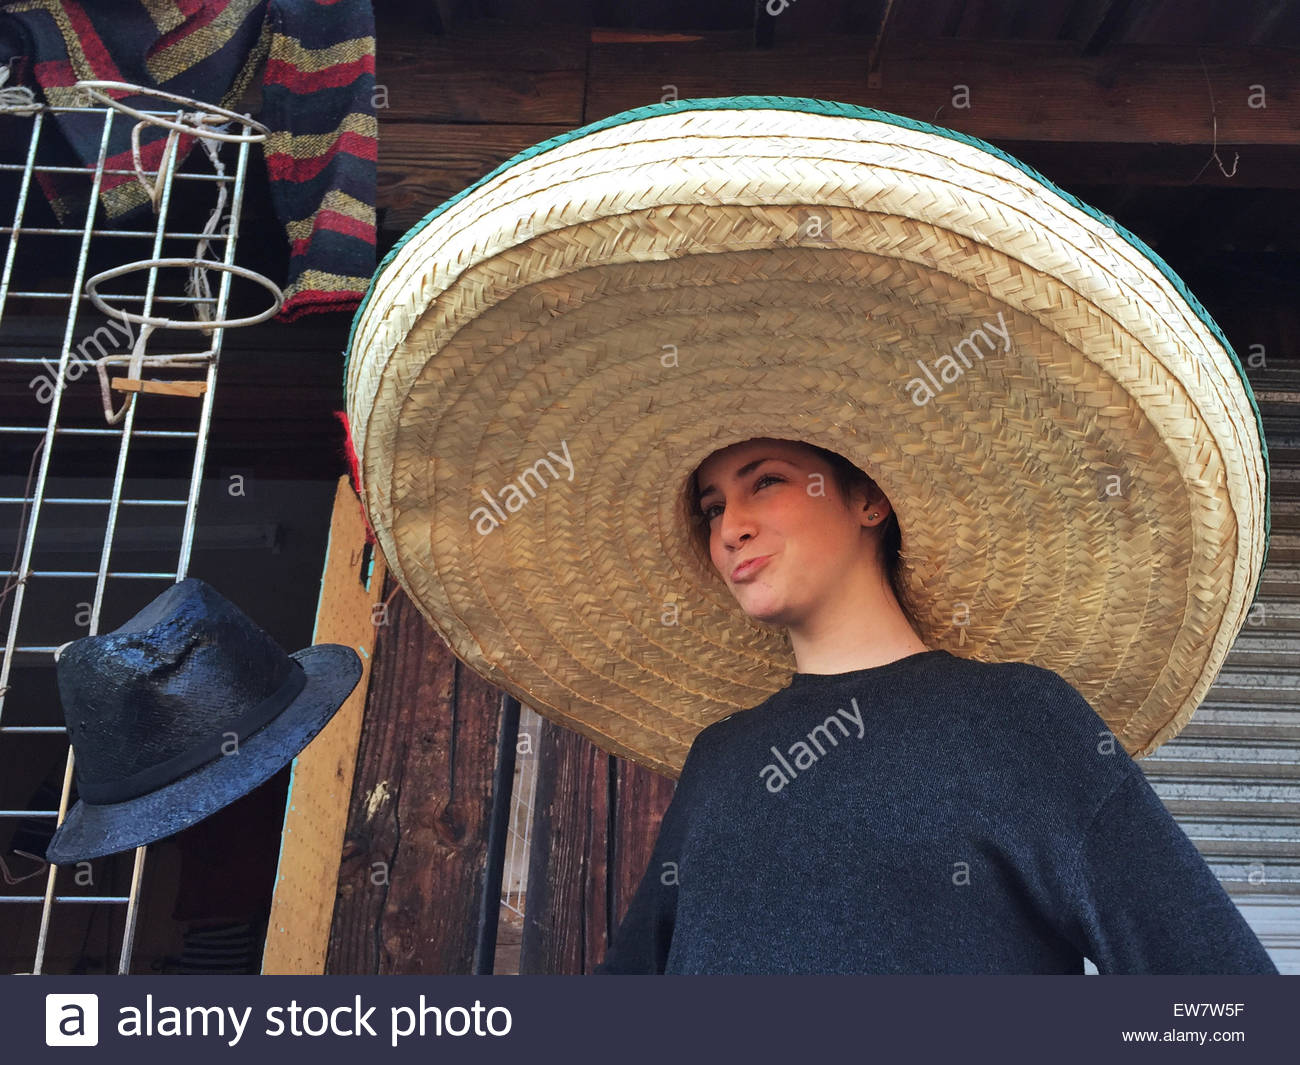 Sombrero Stock Photos   Sombrero Stock Images - Alamy d4bb004f33b